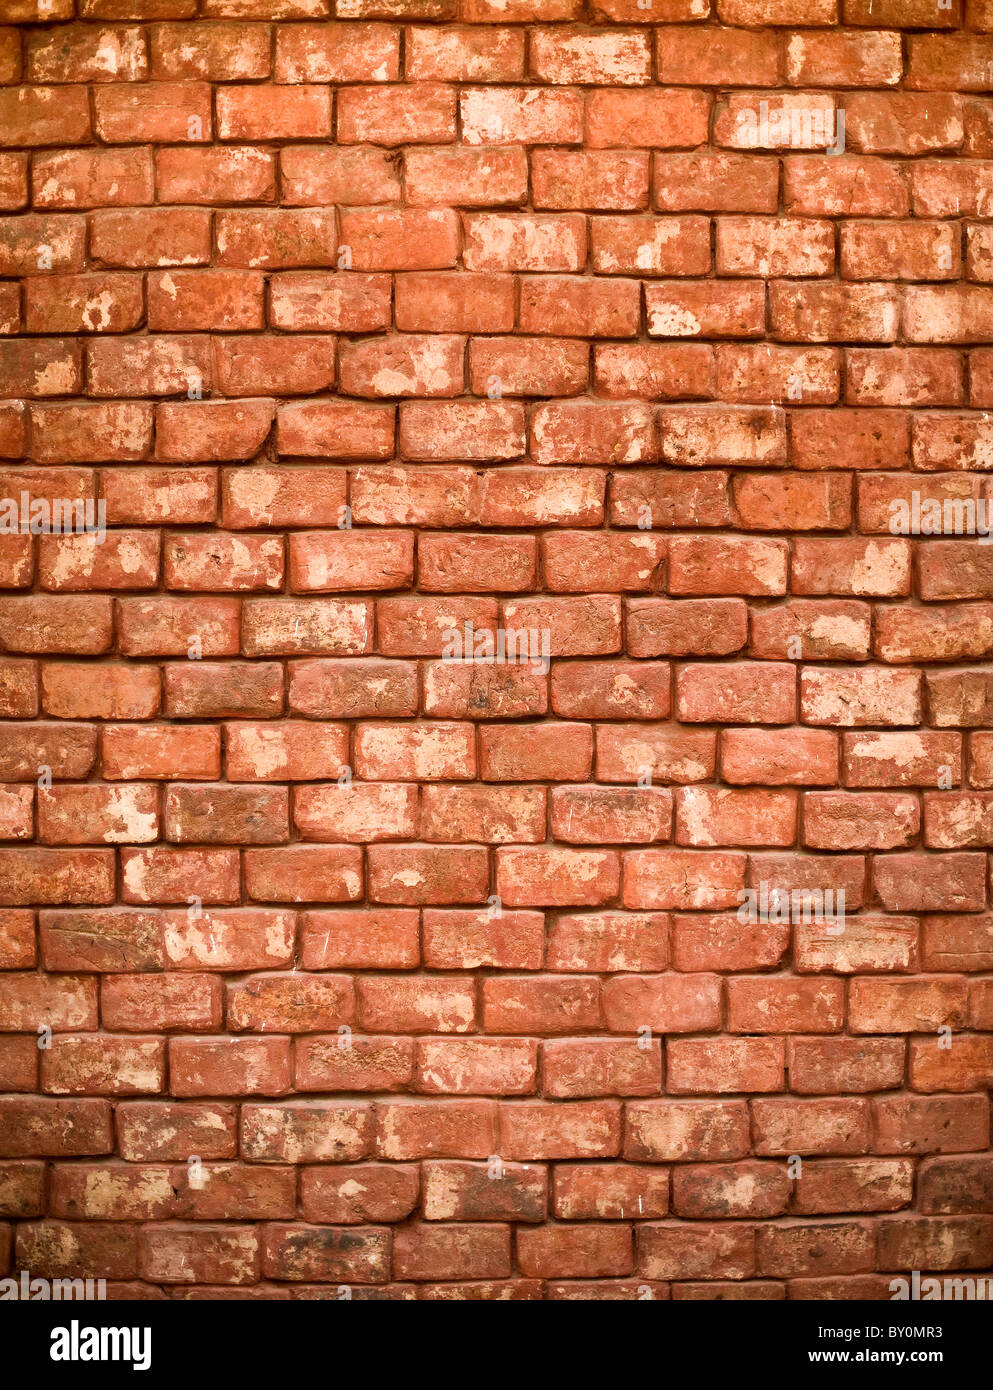 detail of a red brick wall - Stock Image